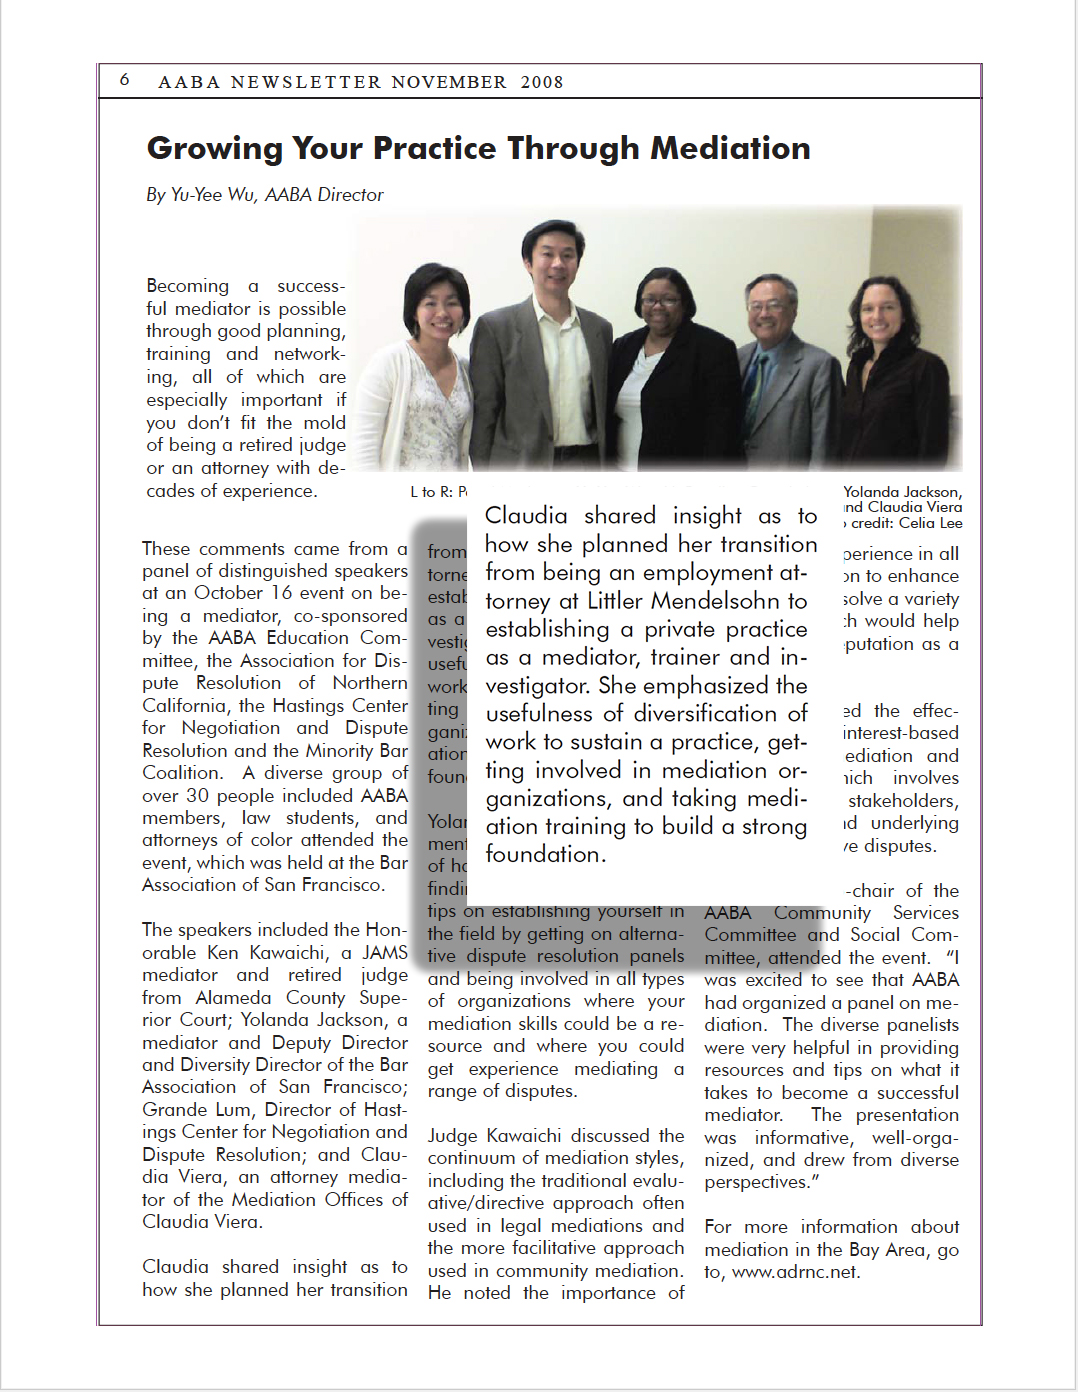 AABA Newsletter pg 6 highlight.jpg